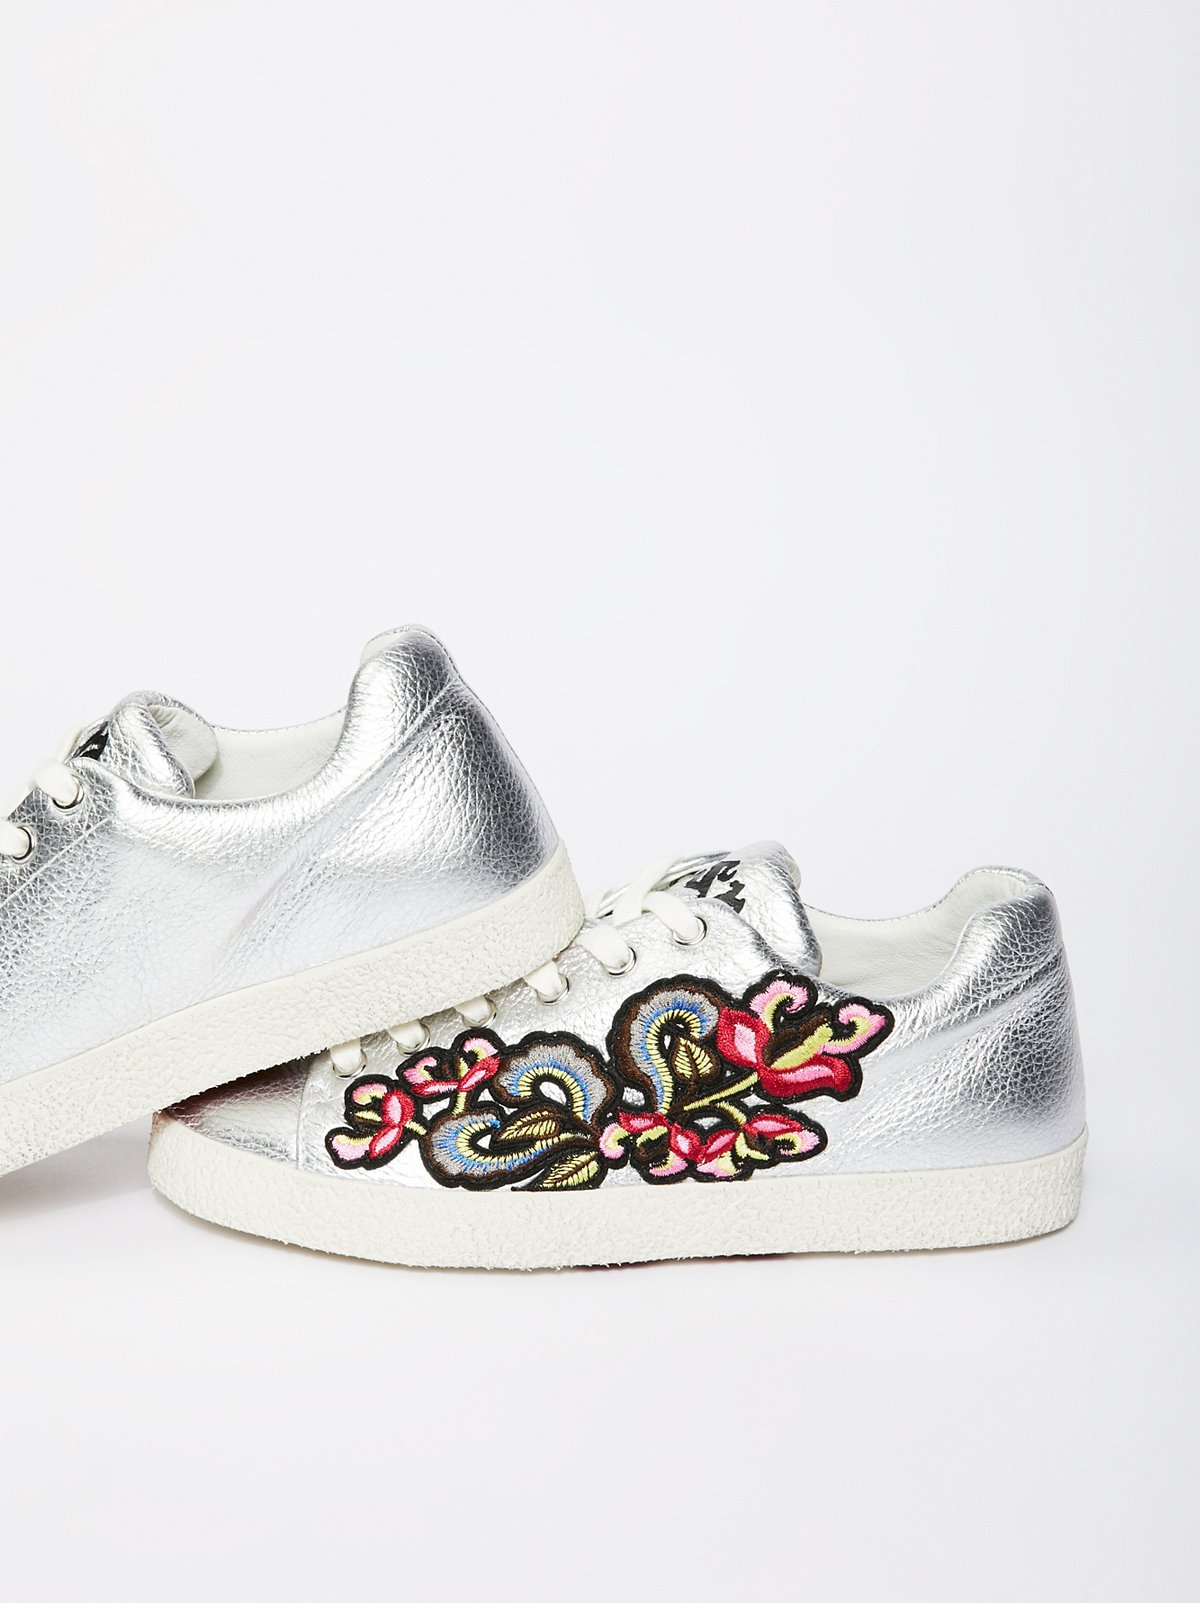 Nak Embroidered Sneaker